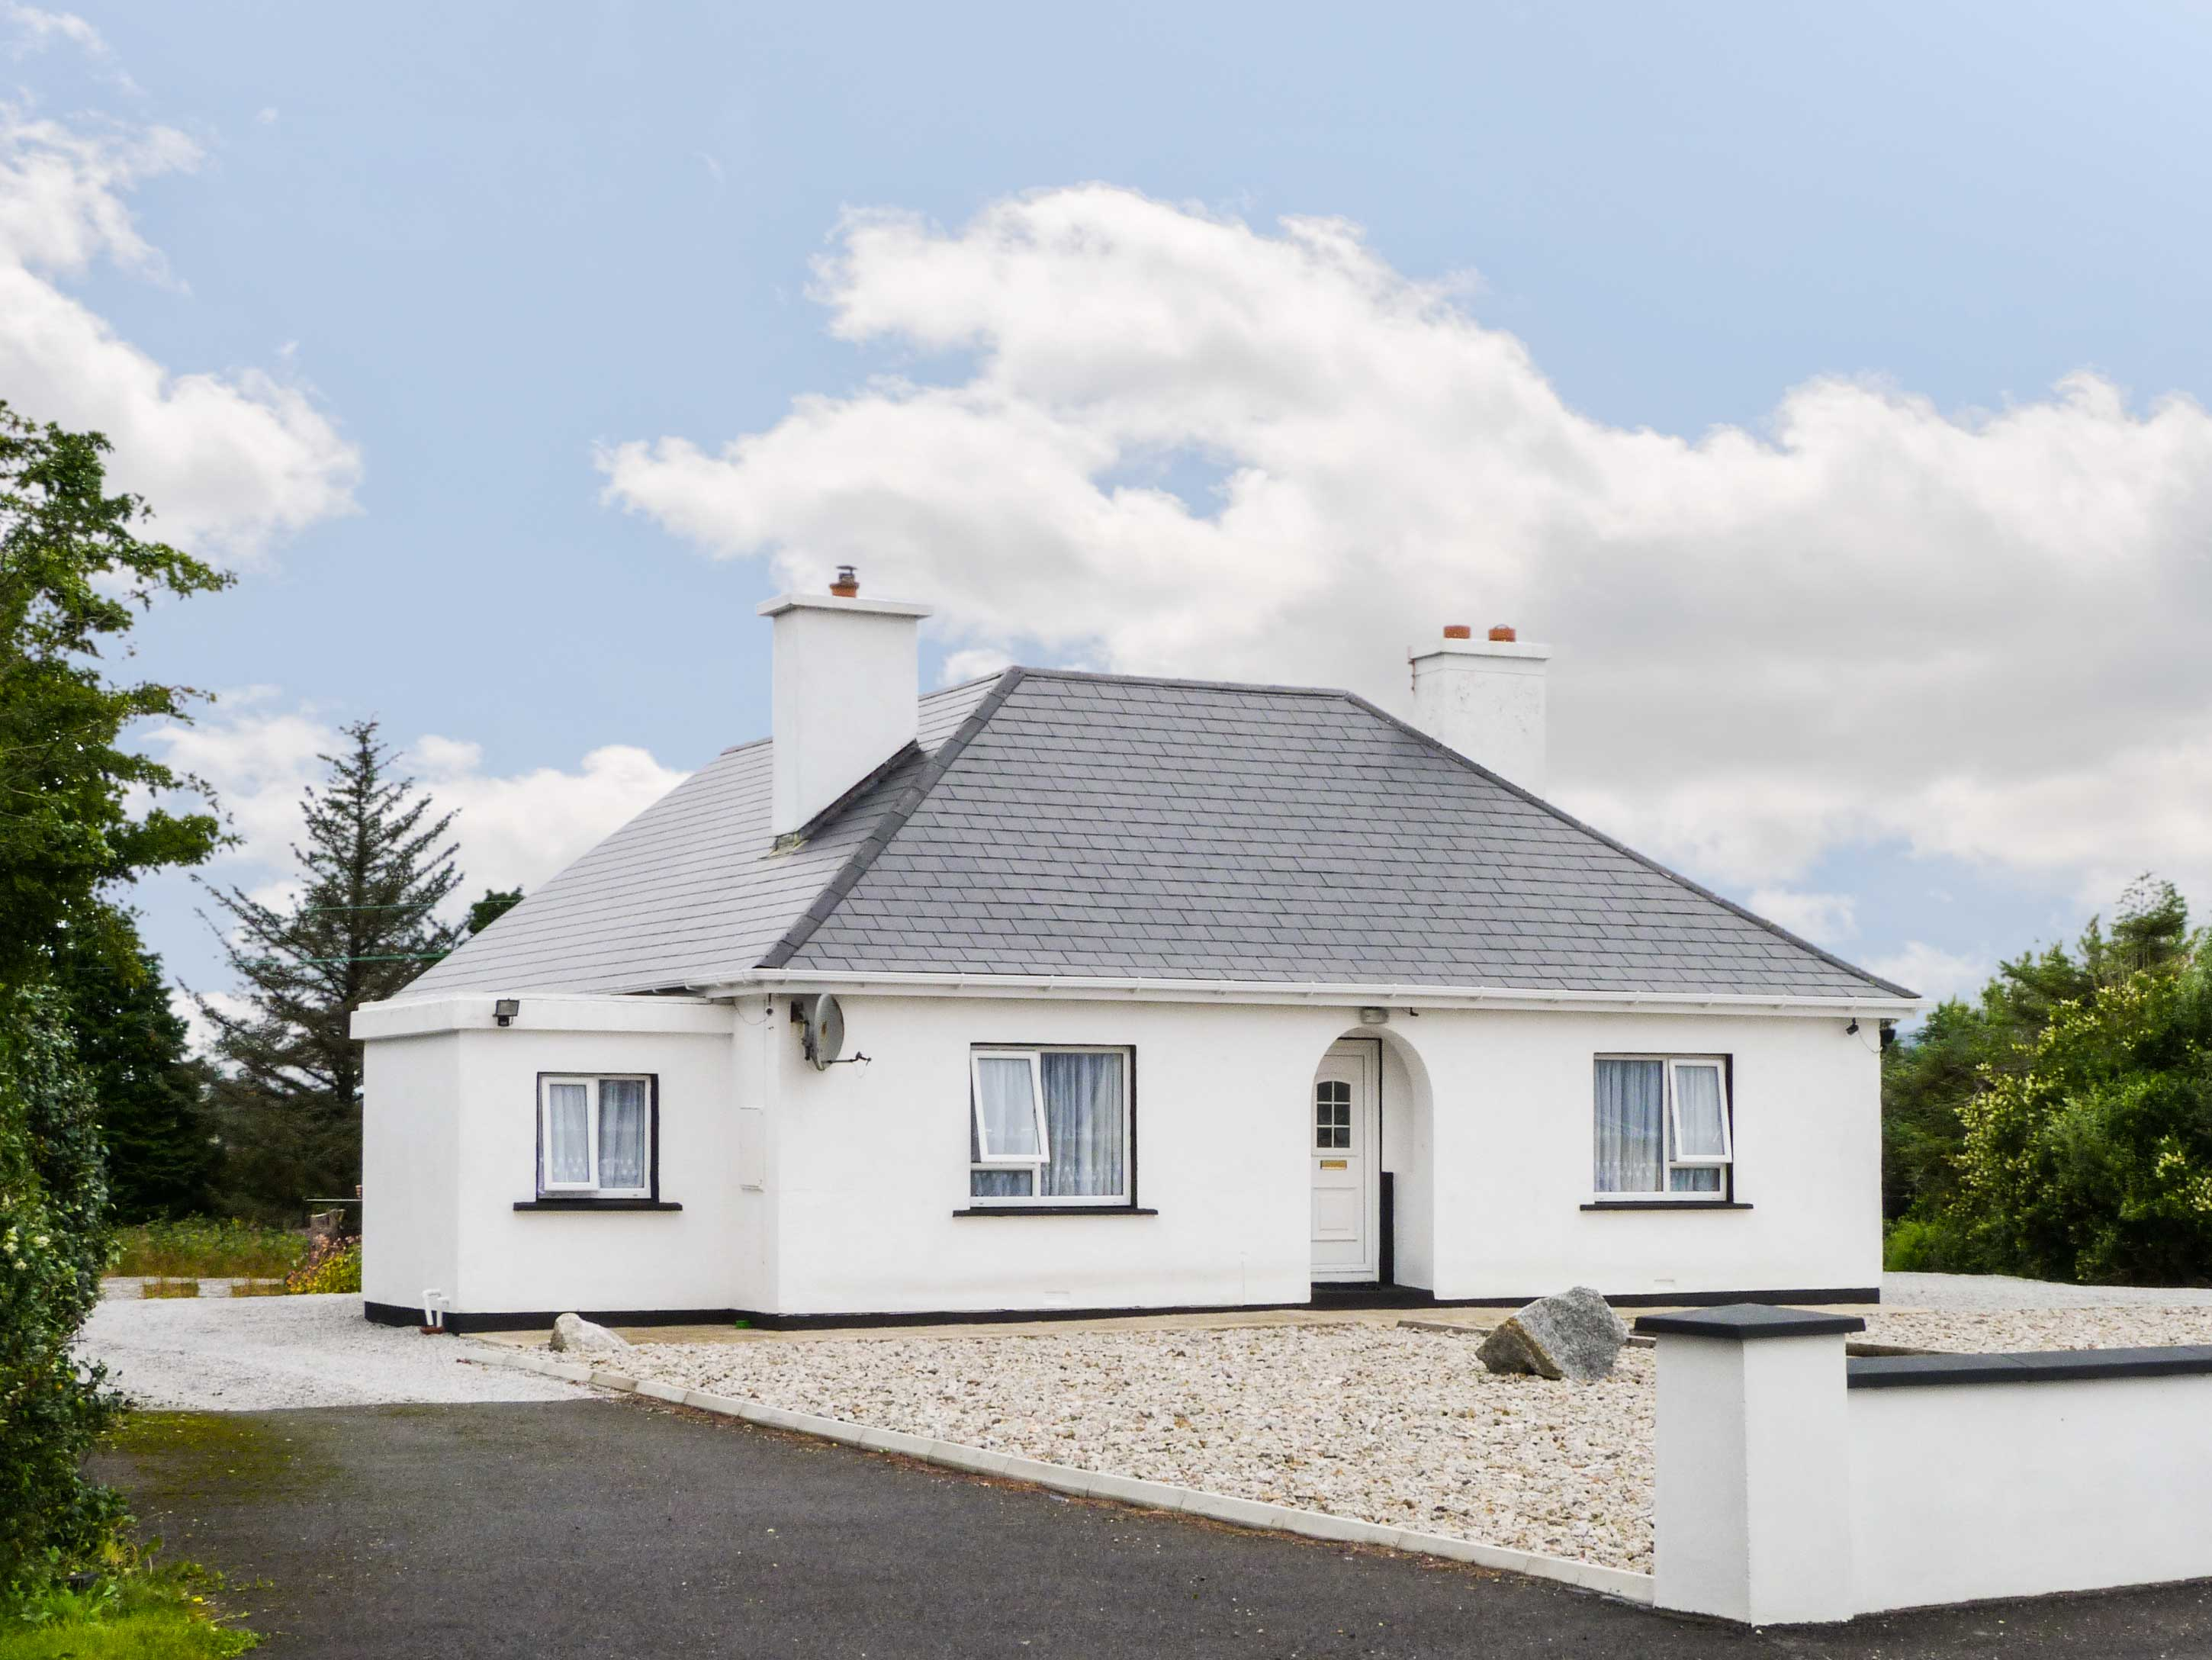 3 bedroom Cottage for rent in Dungloe